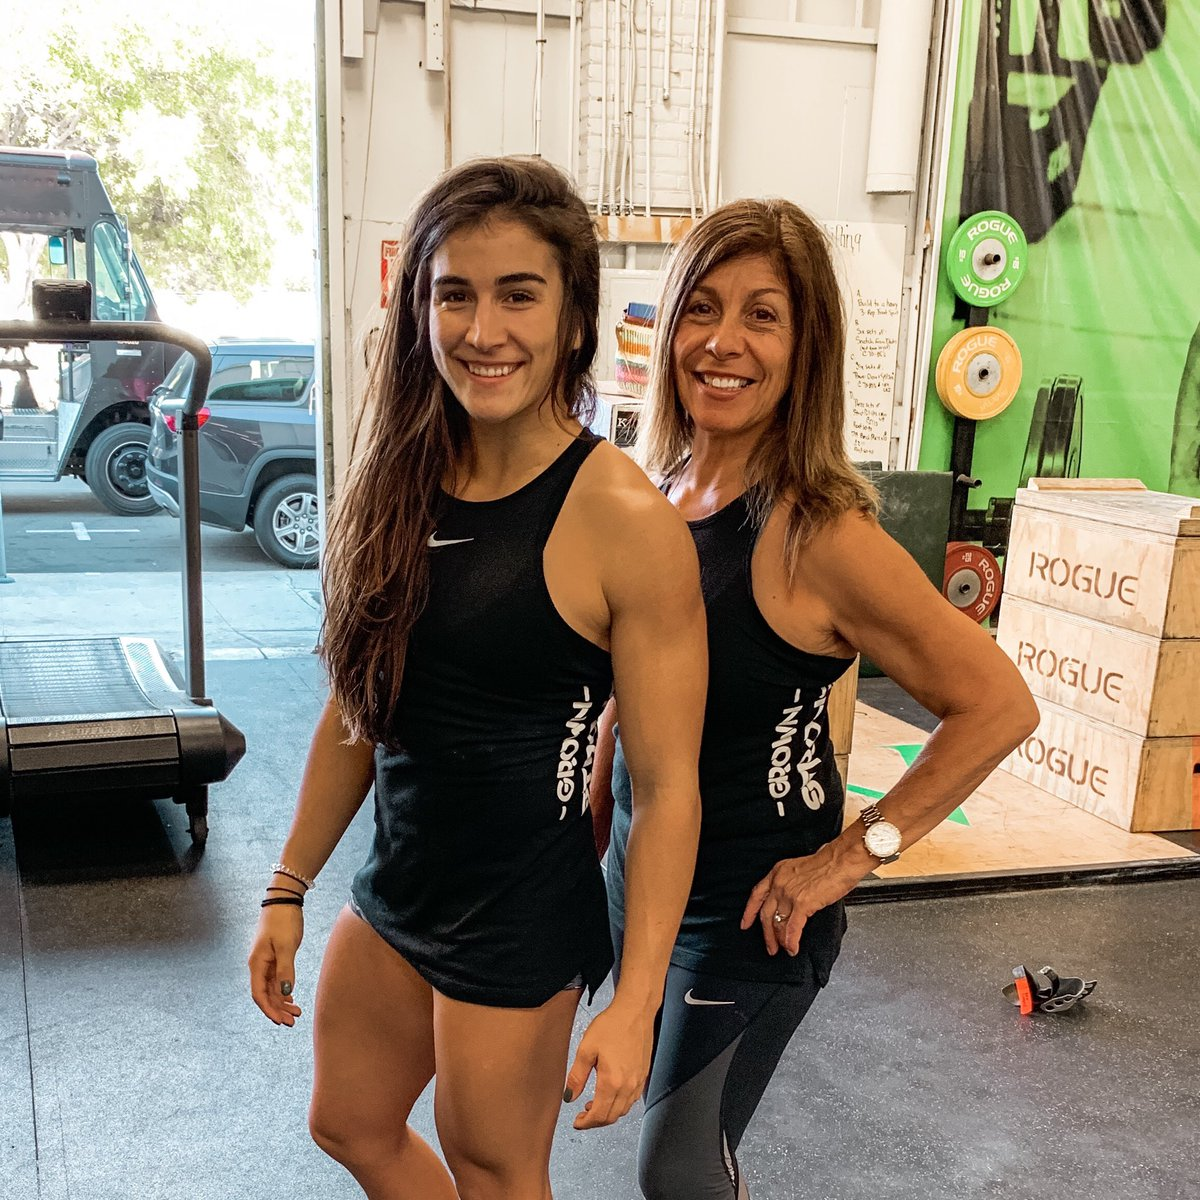 Got it from my mama. 💕 Accidentally twinning in our #GrownStrong tanks the other day. ☺️👯♀️ Shop the big Cyber Monday SALE at grownstrong.com right now. Save 33% until Midnight TONIGHT PST. Happy Holidays everyone! 🎄🤶🏼🎁 ⠀⠀⠀⠀⠀⠀⠀⠀⠀ #CyberMonday #Sale #Nike